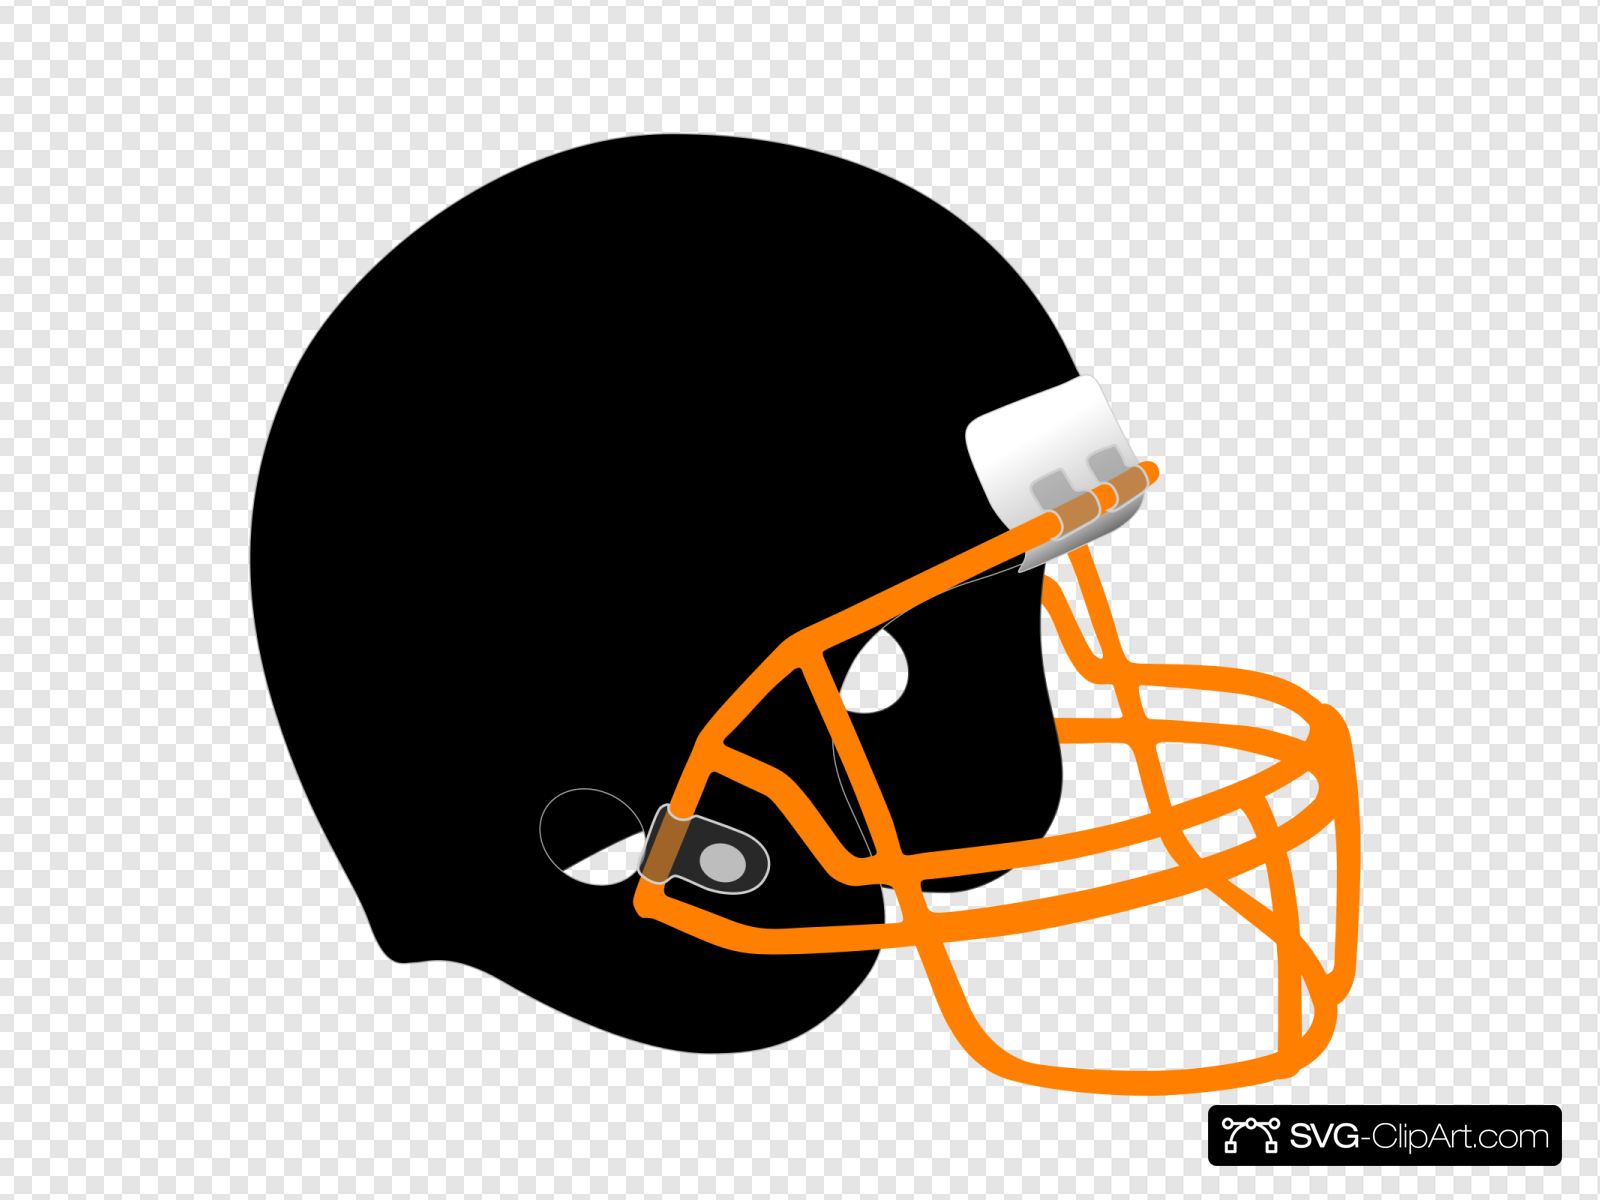 Yellow Grill Football Helmet Clip art, Icon and SVG.